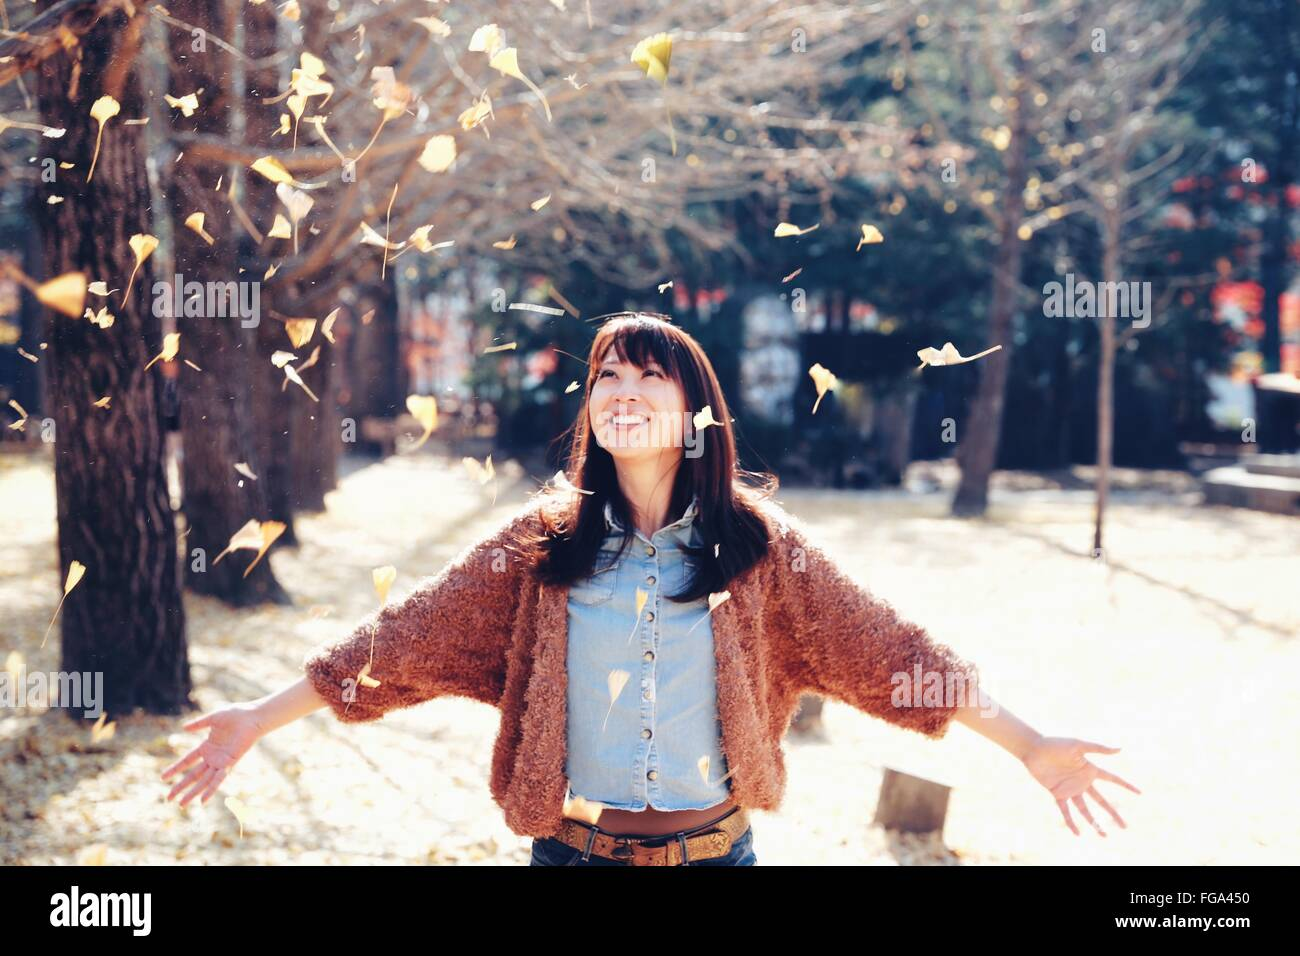 Happy Young Woman With Arms Outstretched In Park - Stock Image